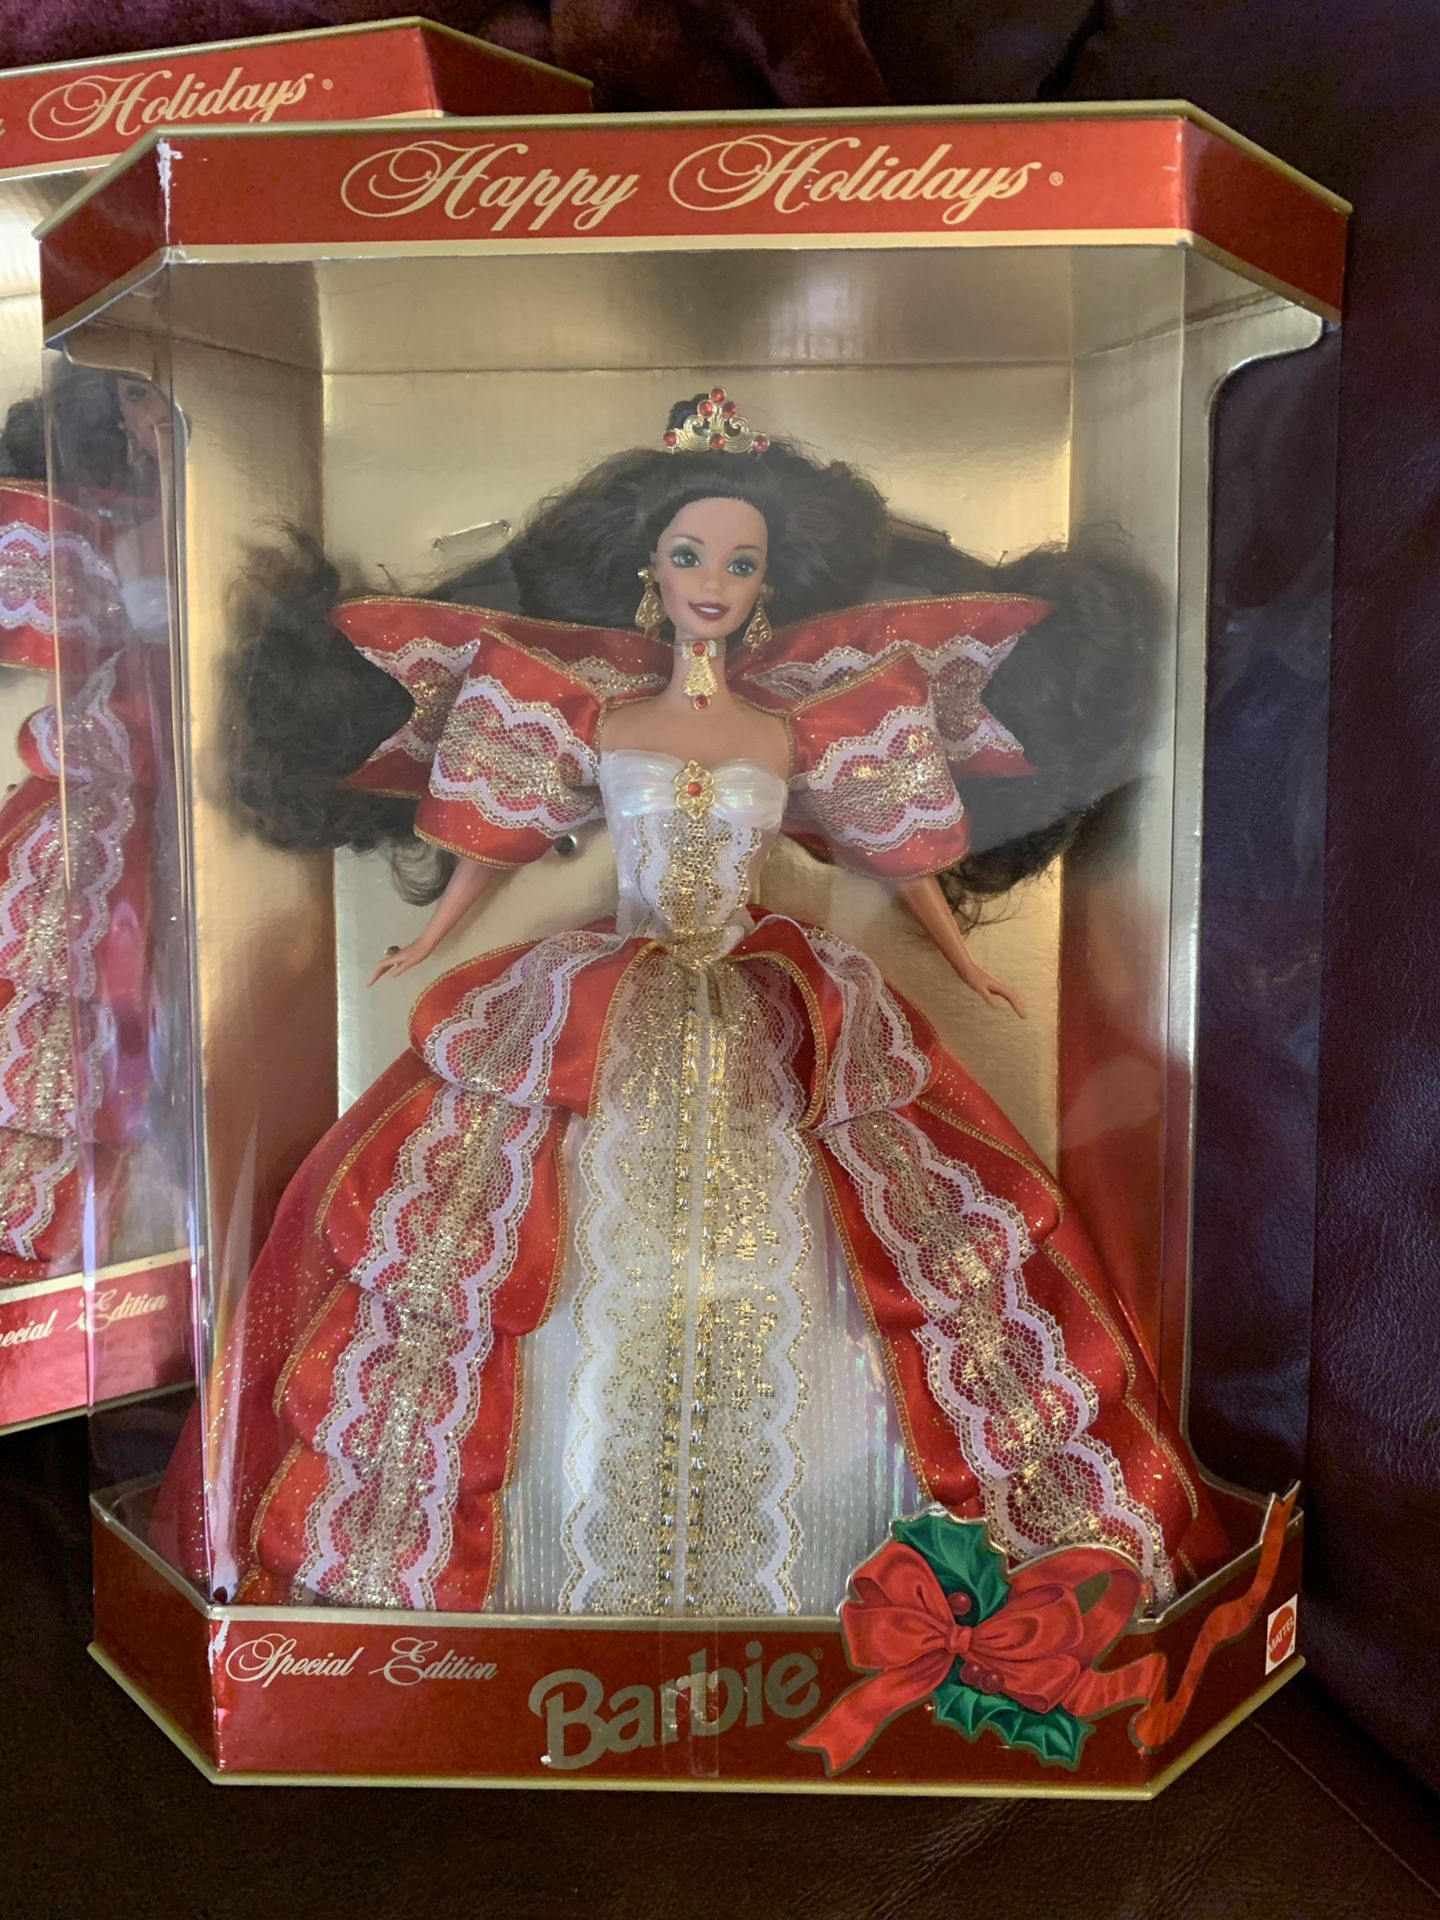 New in Unopened Box Special Edition Holiday Barbie